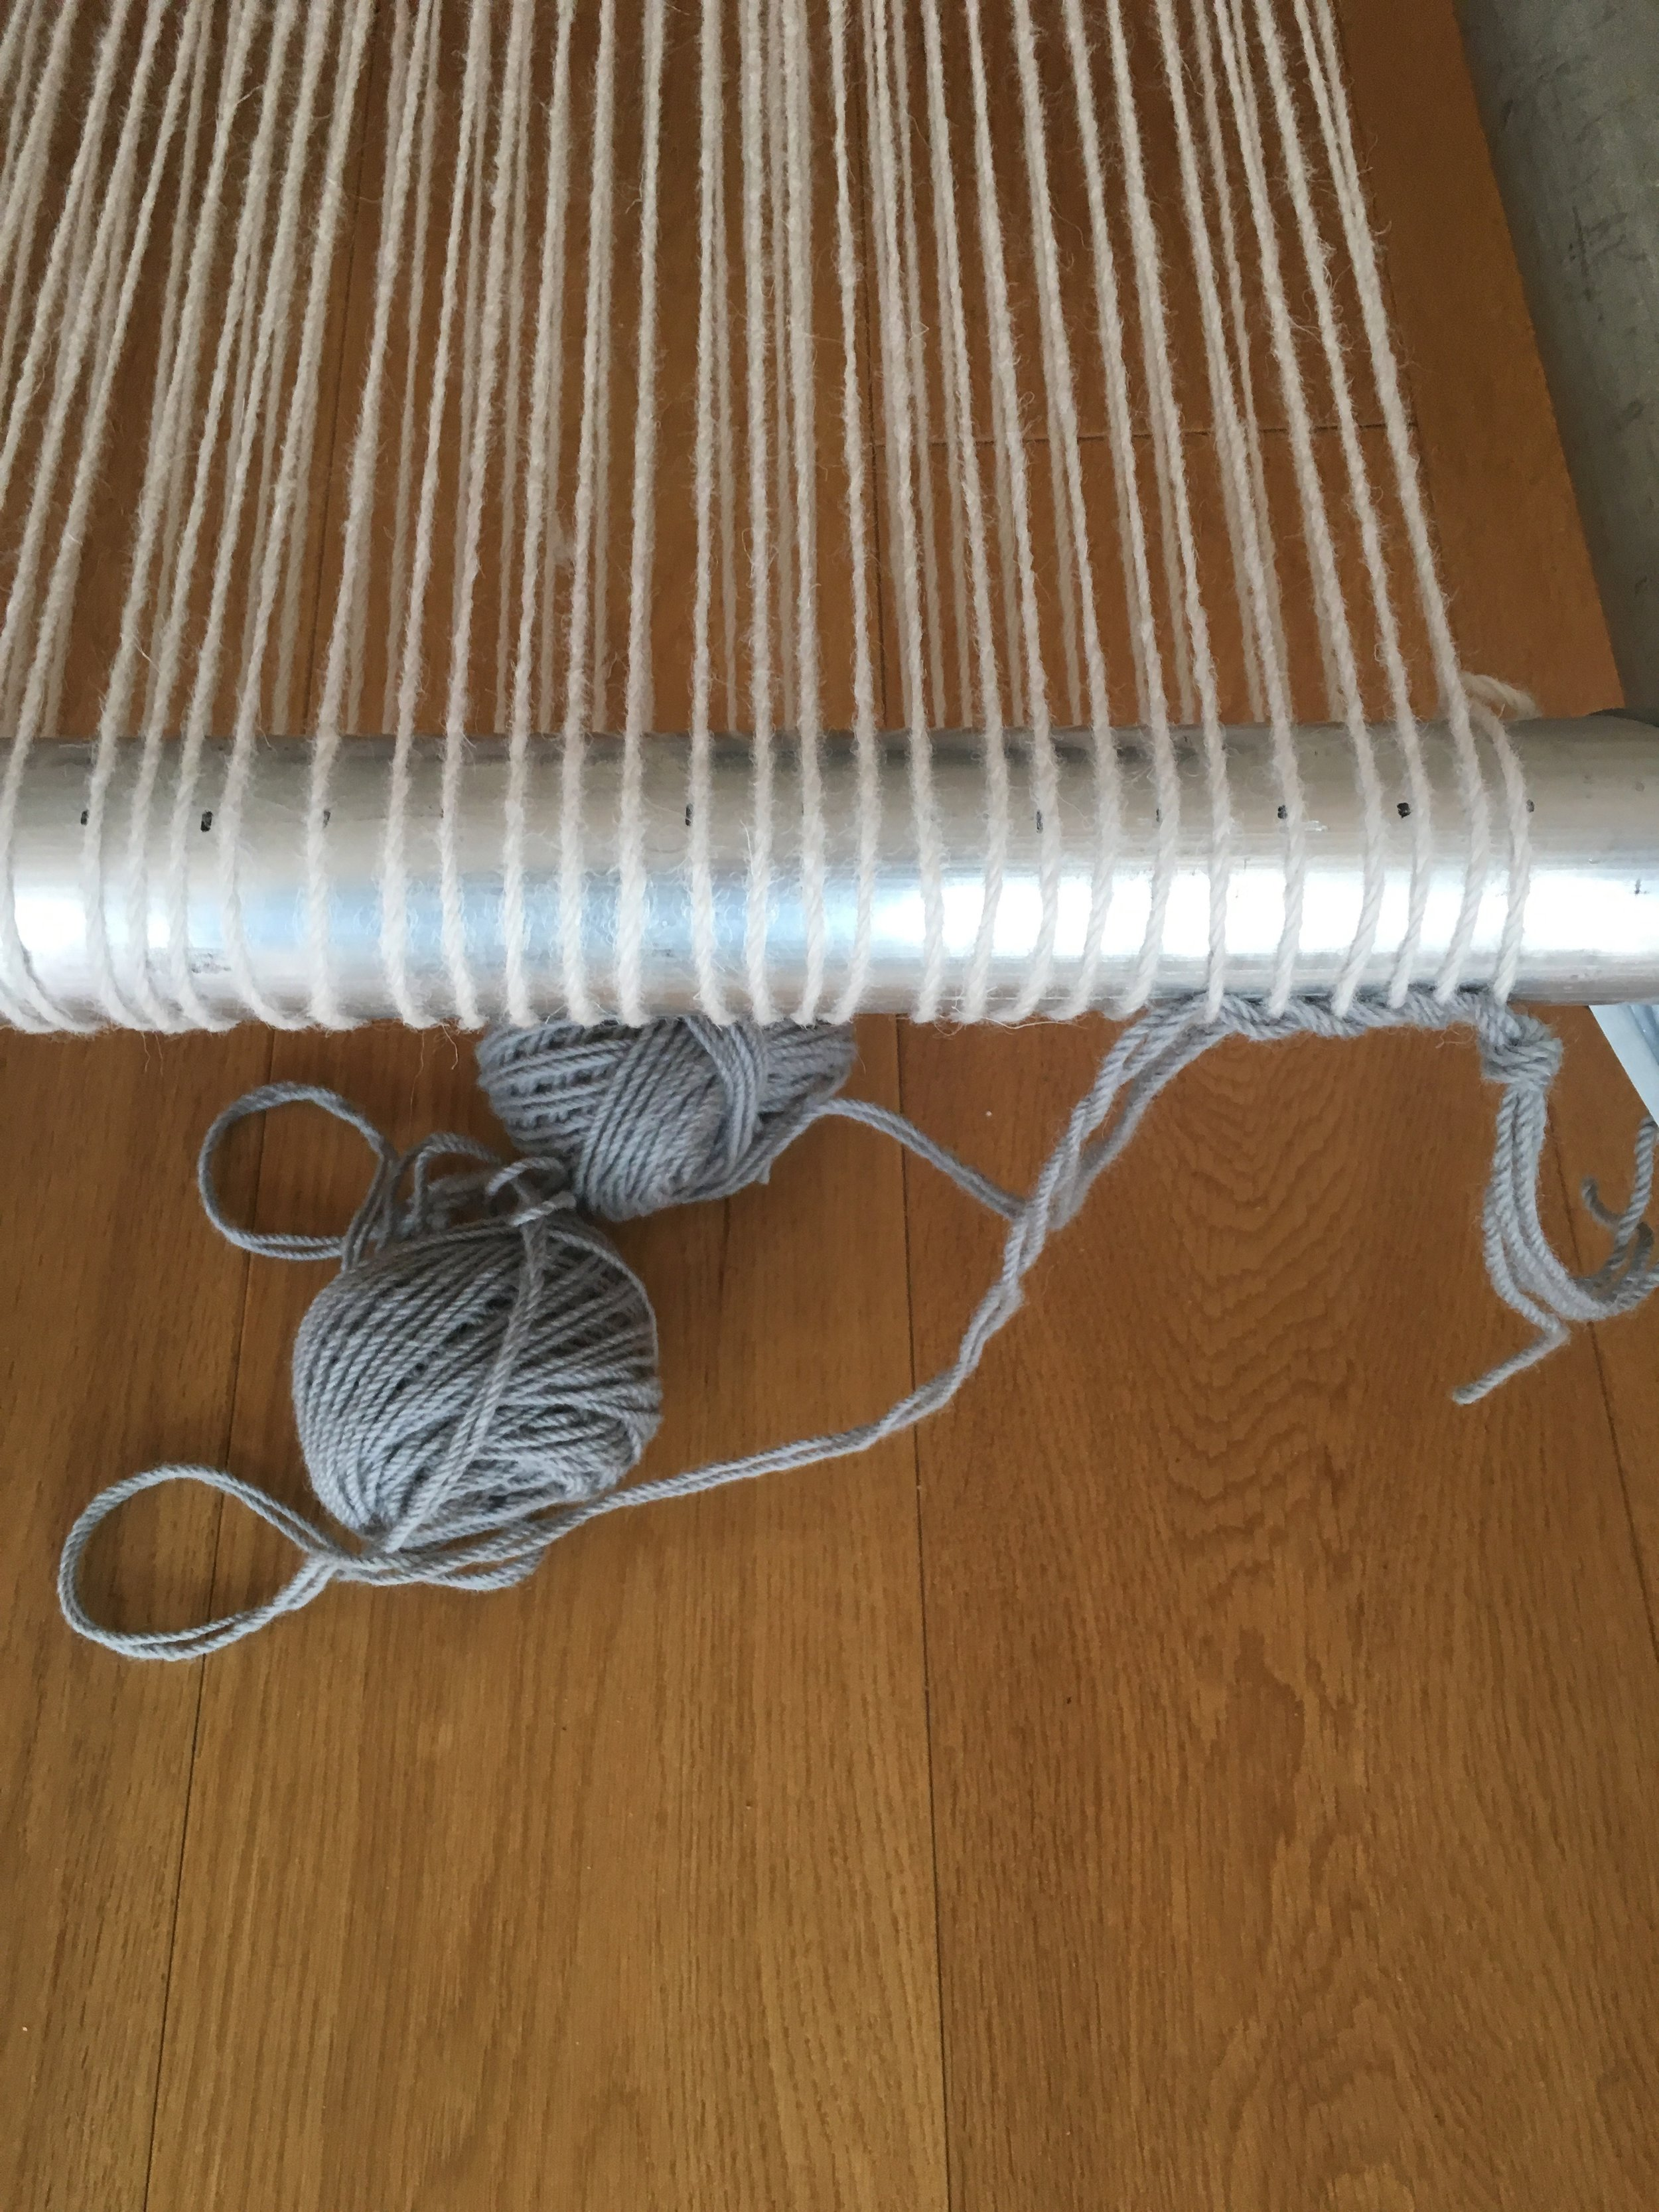 - Twining the warp to secure spacing